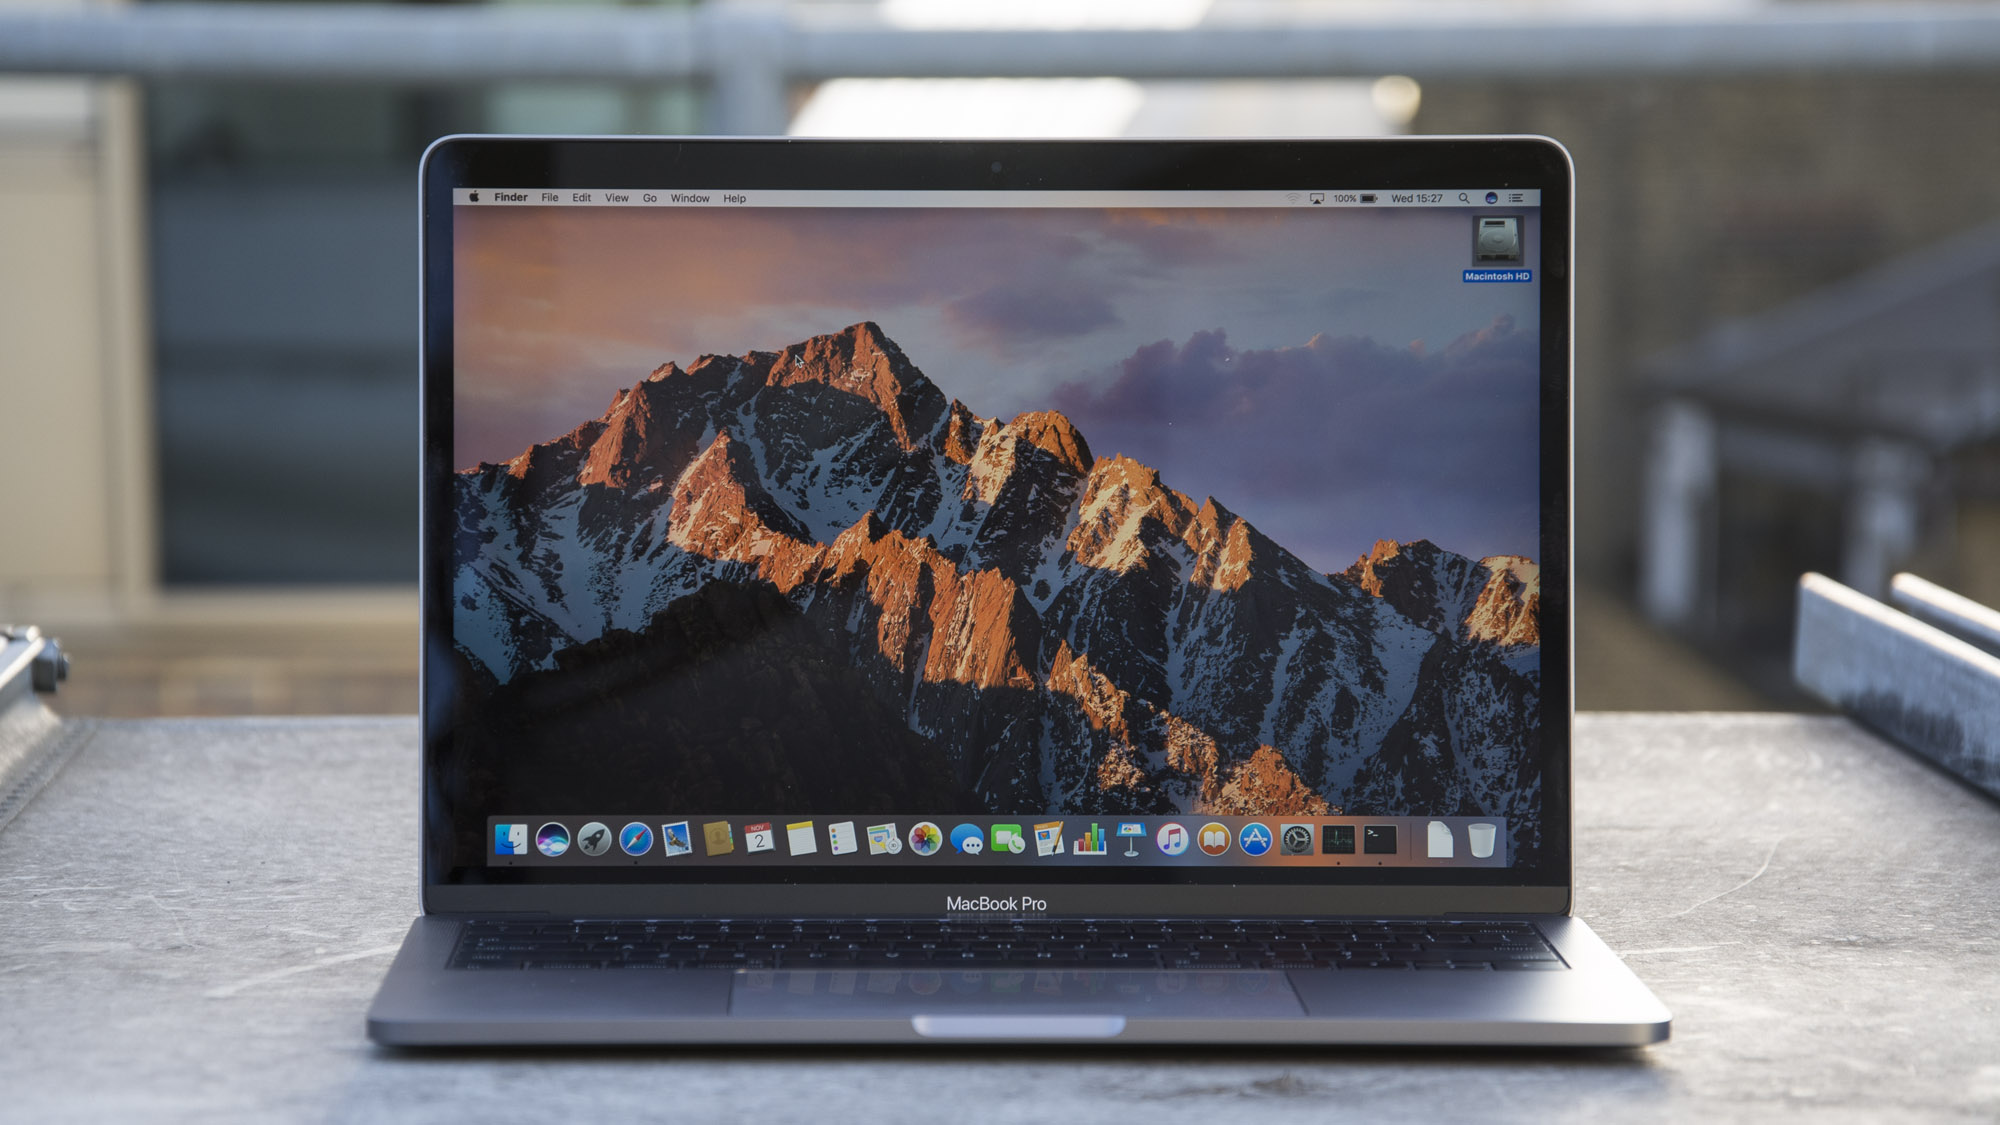 apple macbook pro review 100 off an awesome laptop expert reviews